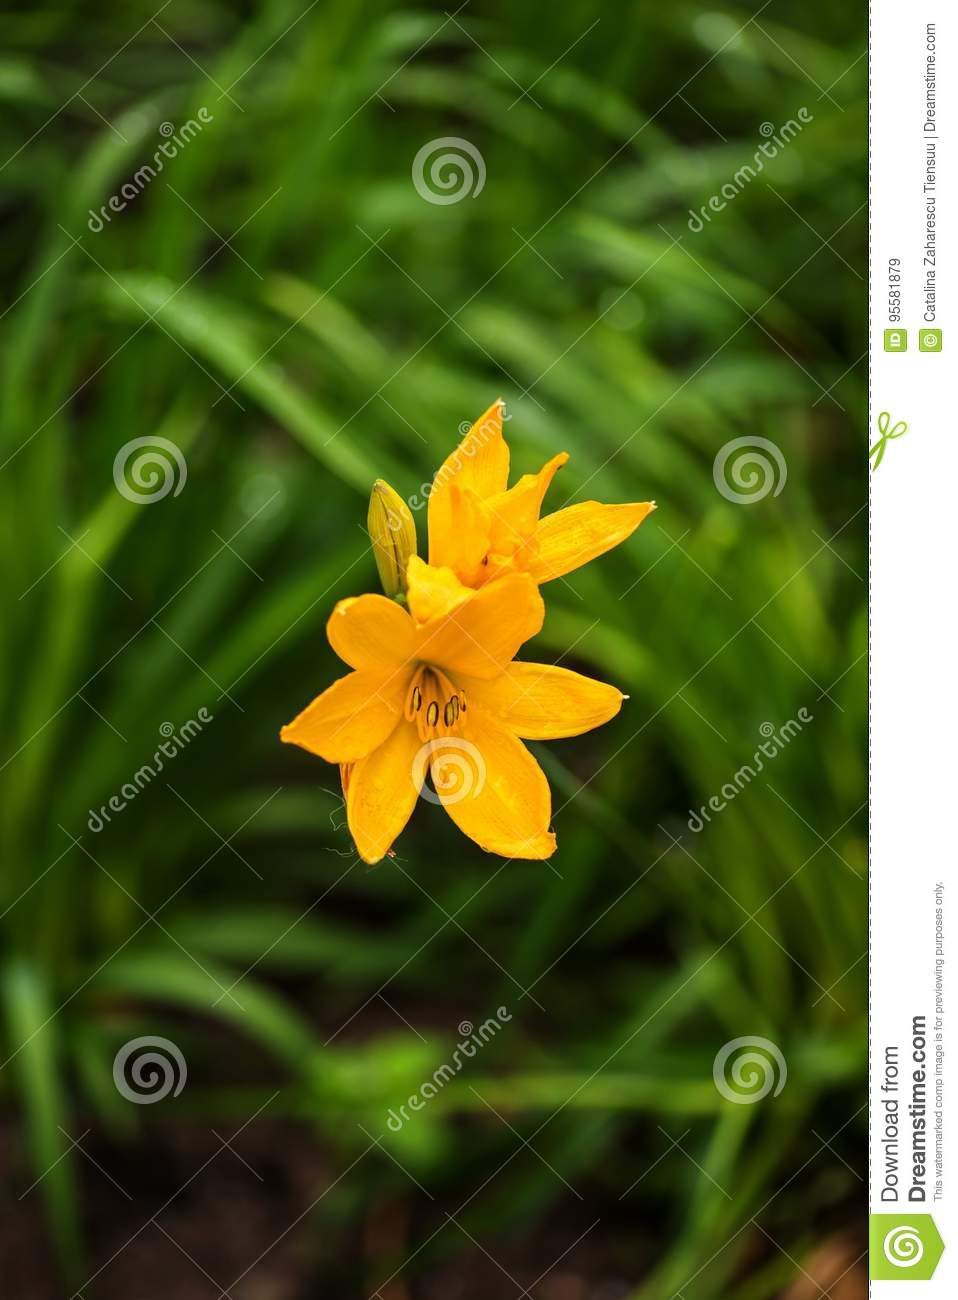 Bright yellow day lilies in a park